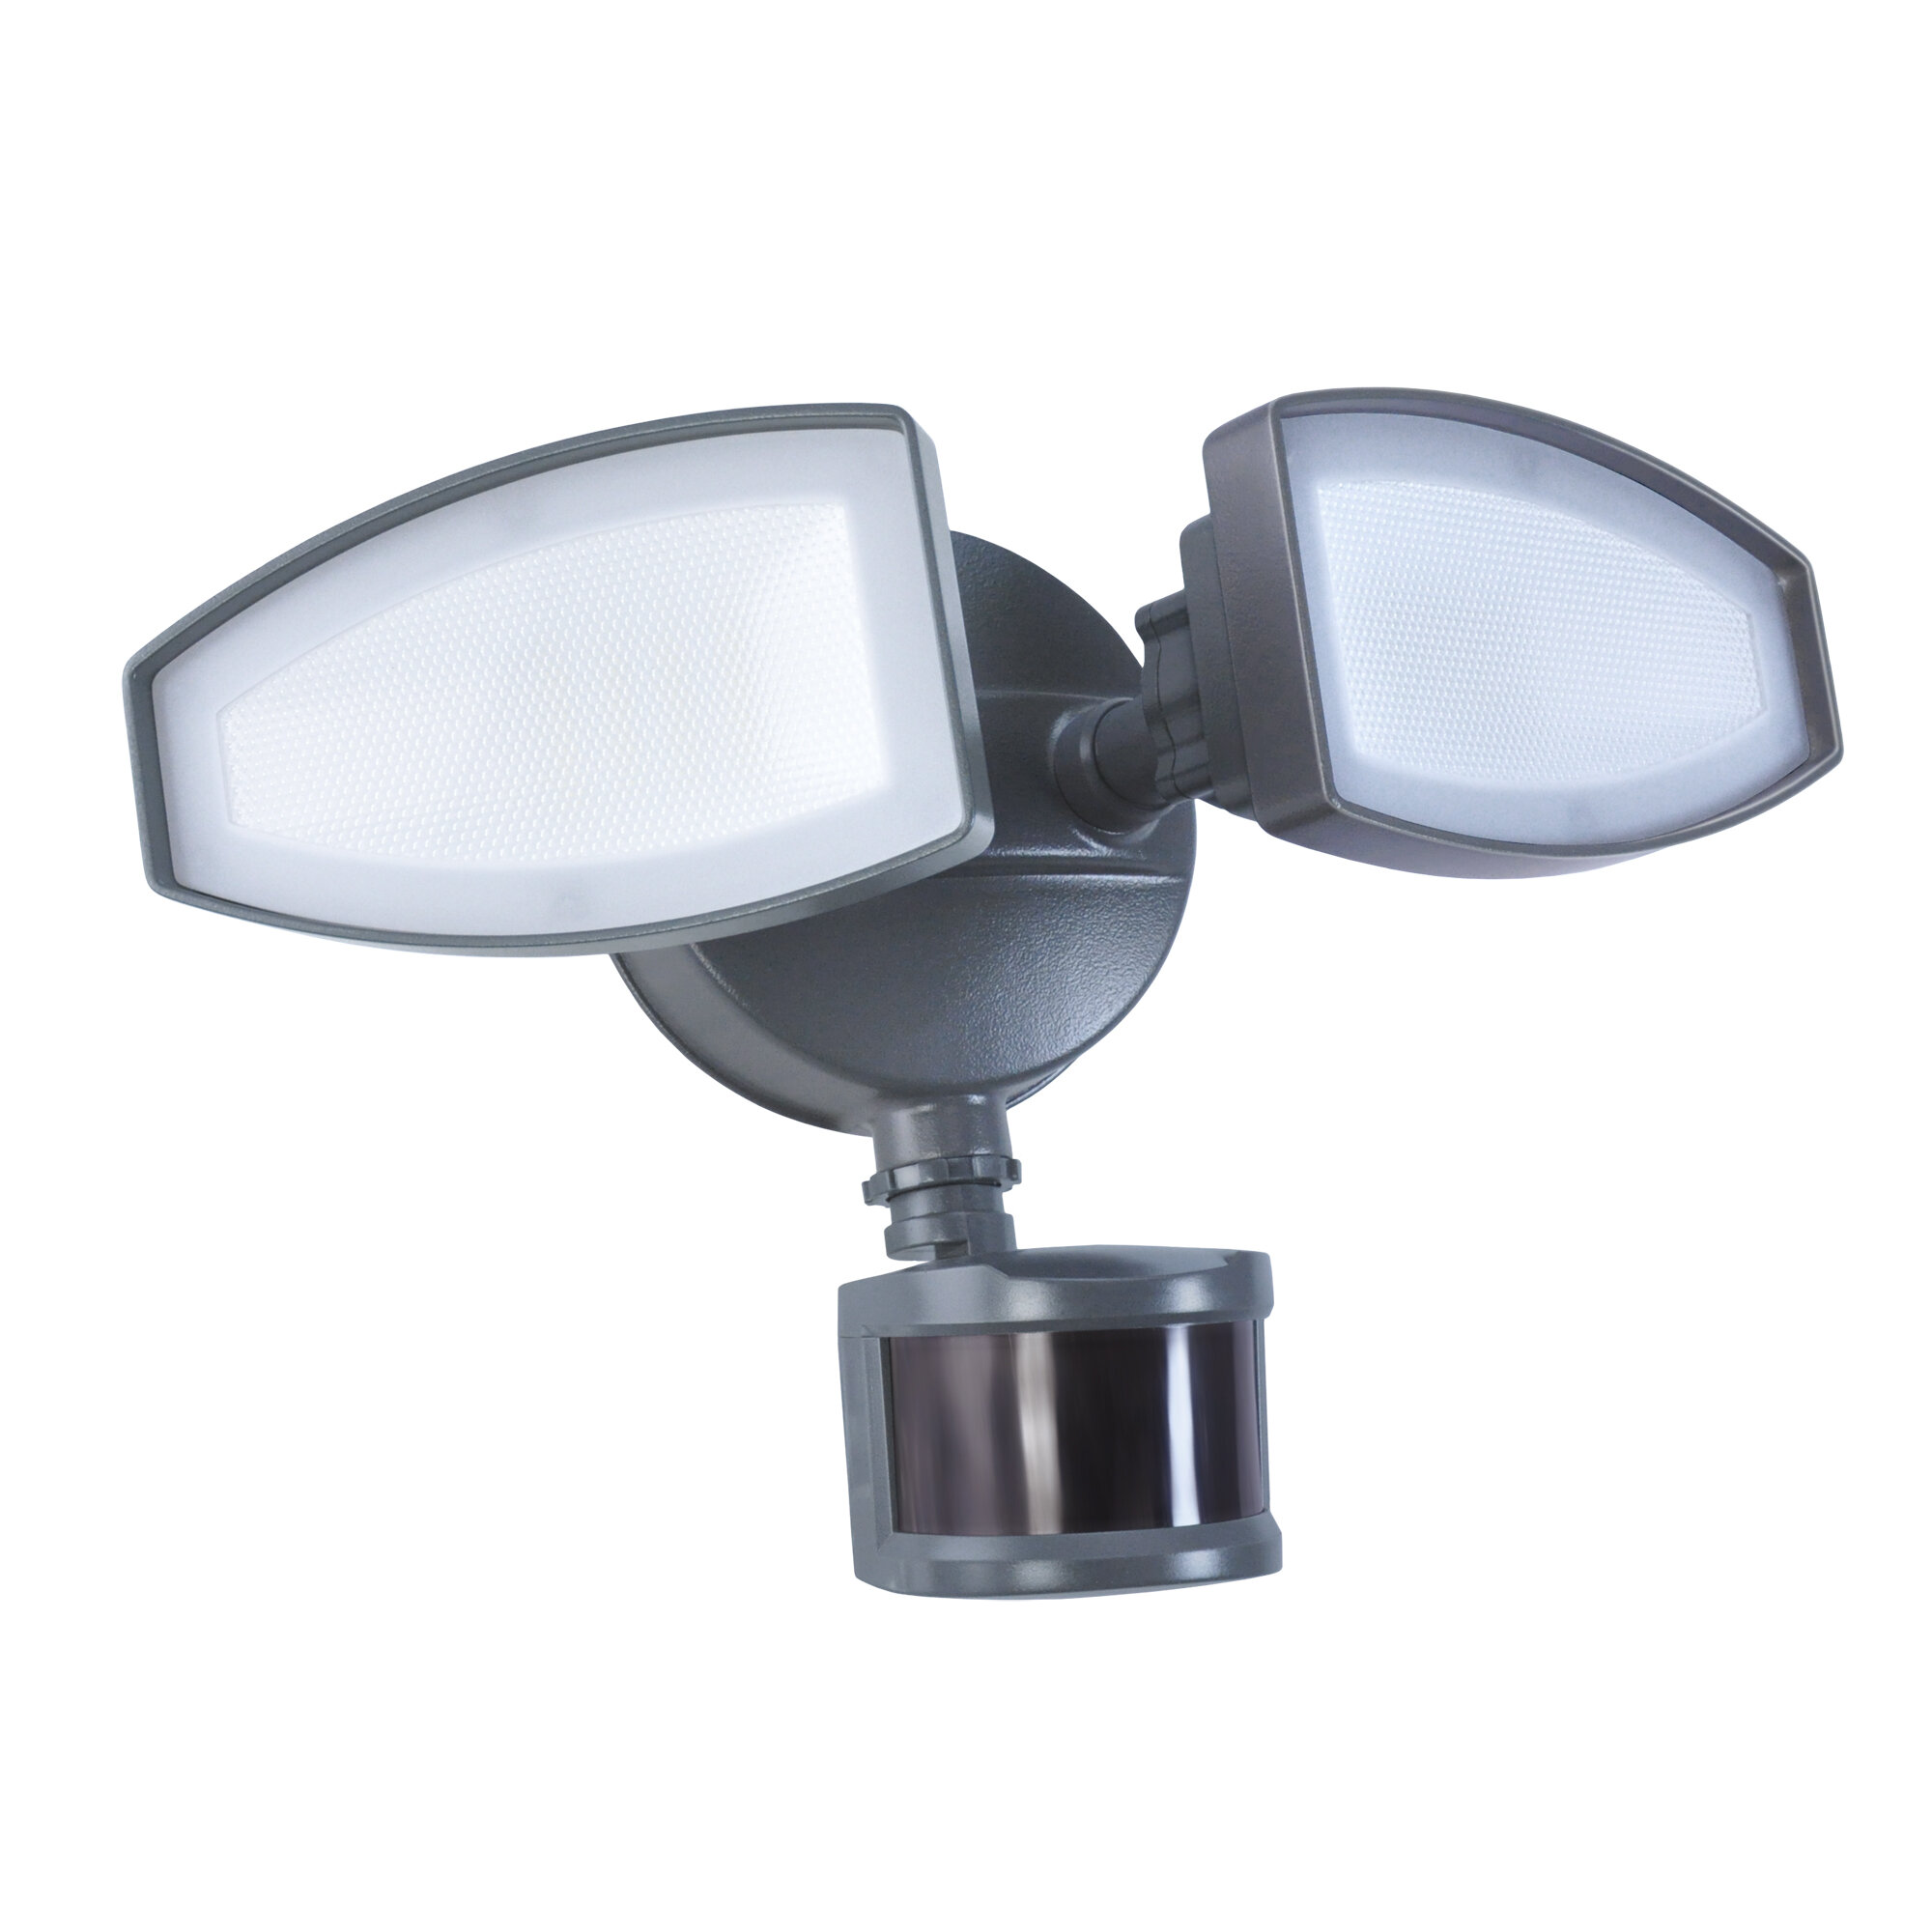 Two Head Switch Control Security 8 Light Led Flood Light